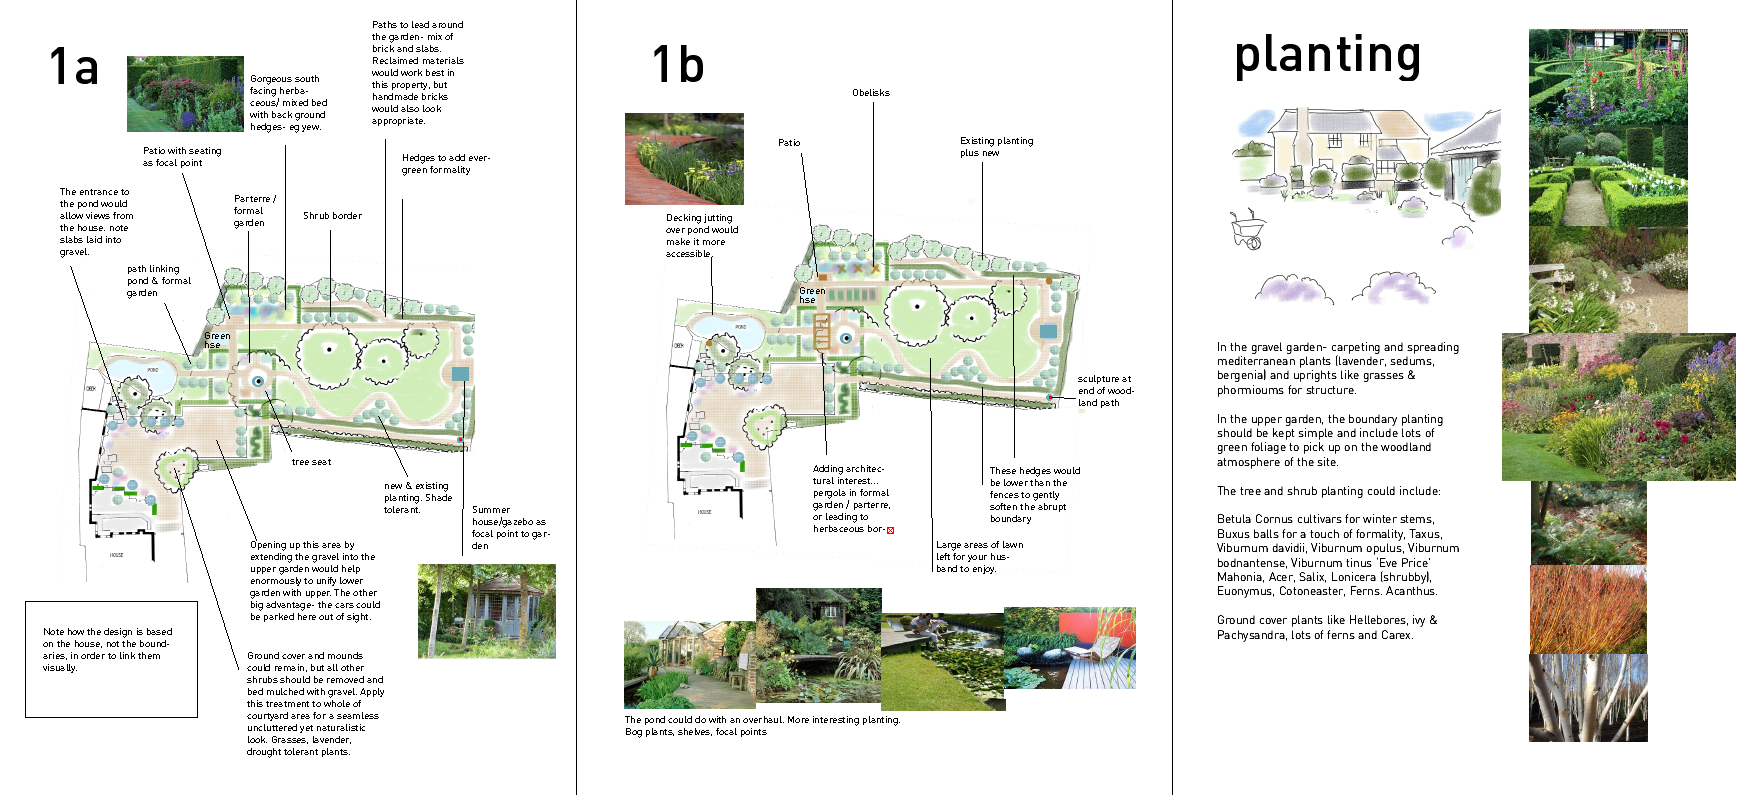 helen riches garden design and writing portfolio